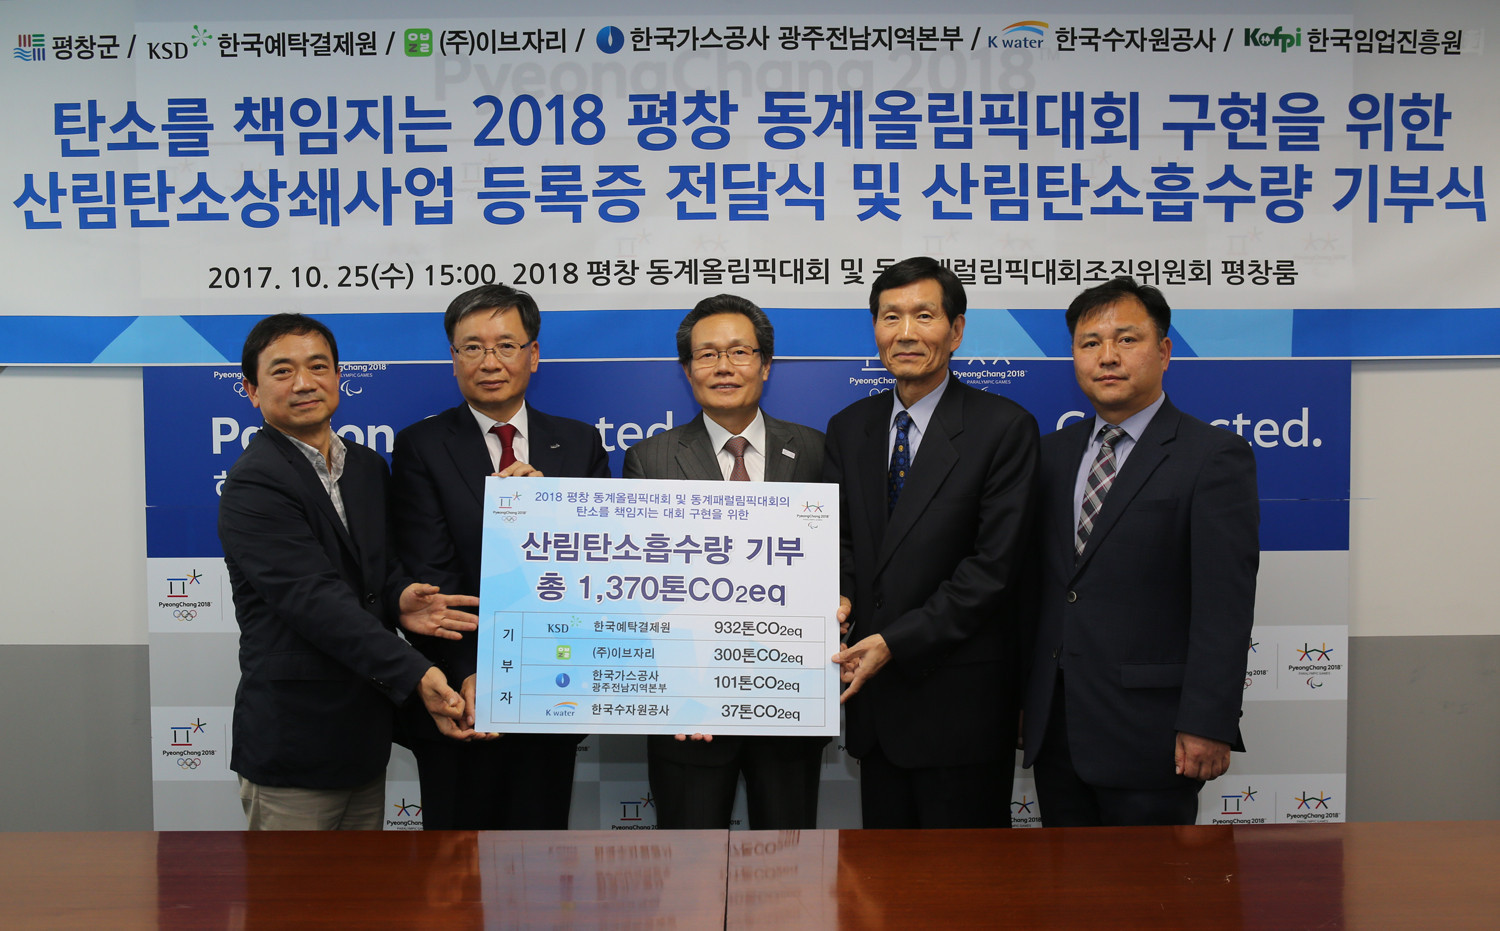 In all, 1,370 tonnes of forest carbon absorption were donated to the Pyeongchang 2018 Organising Committee by the Korea Forest Service to cut greenhouse gas emissions ©Pyeongchang 2018